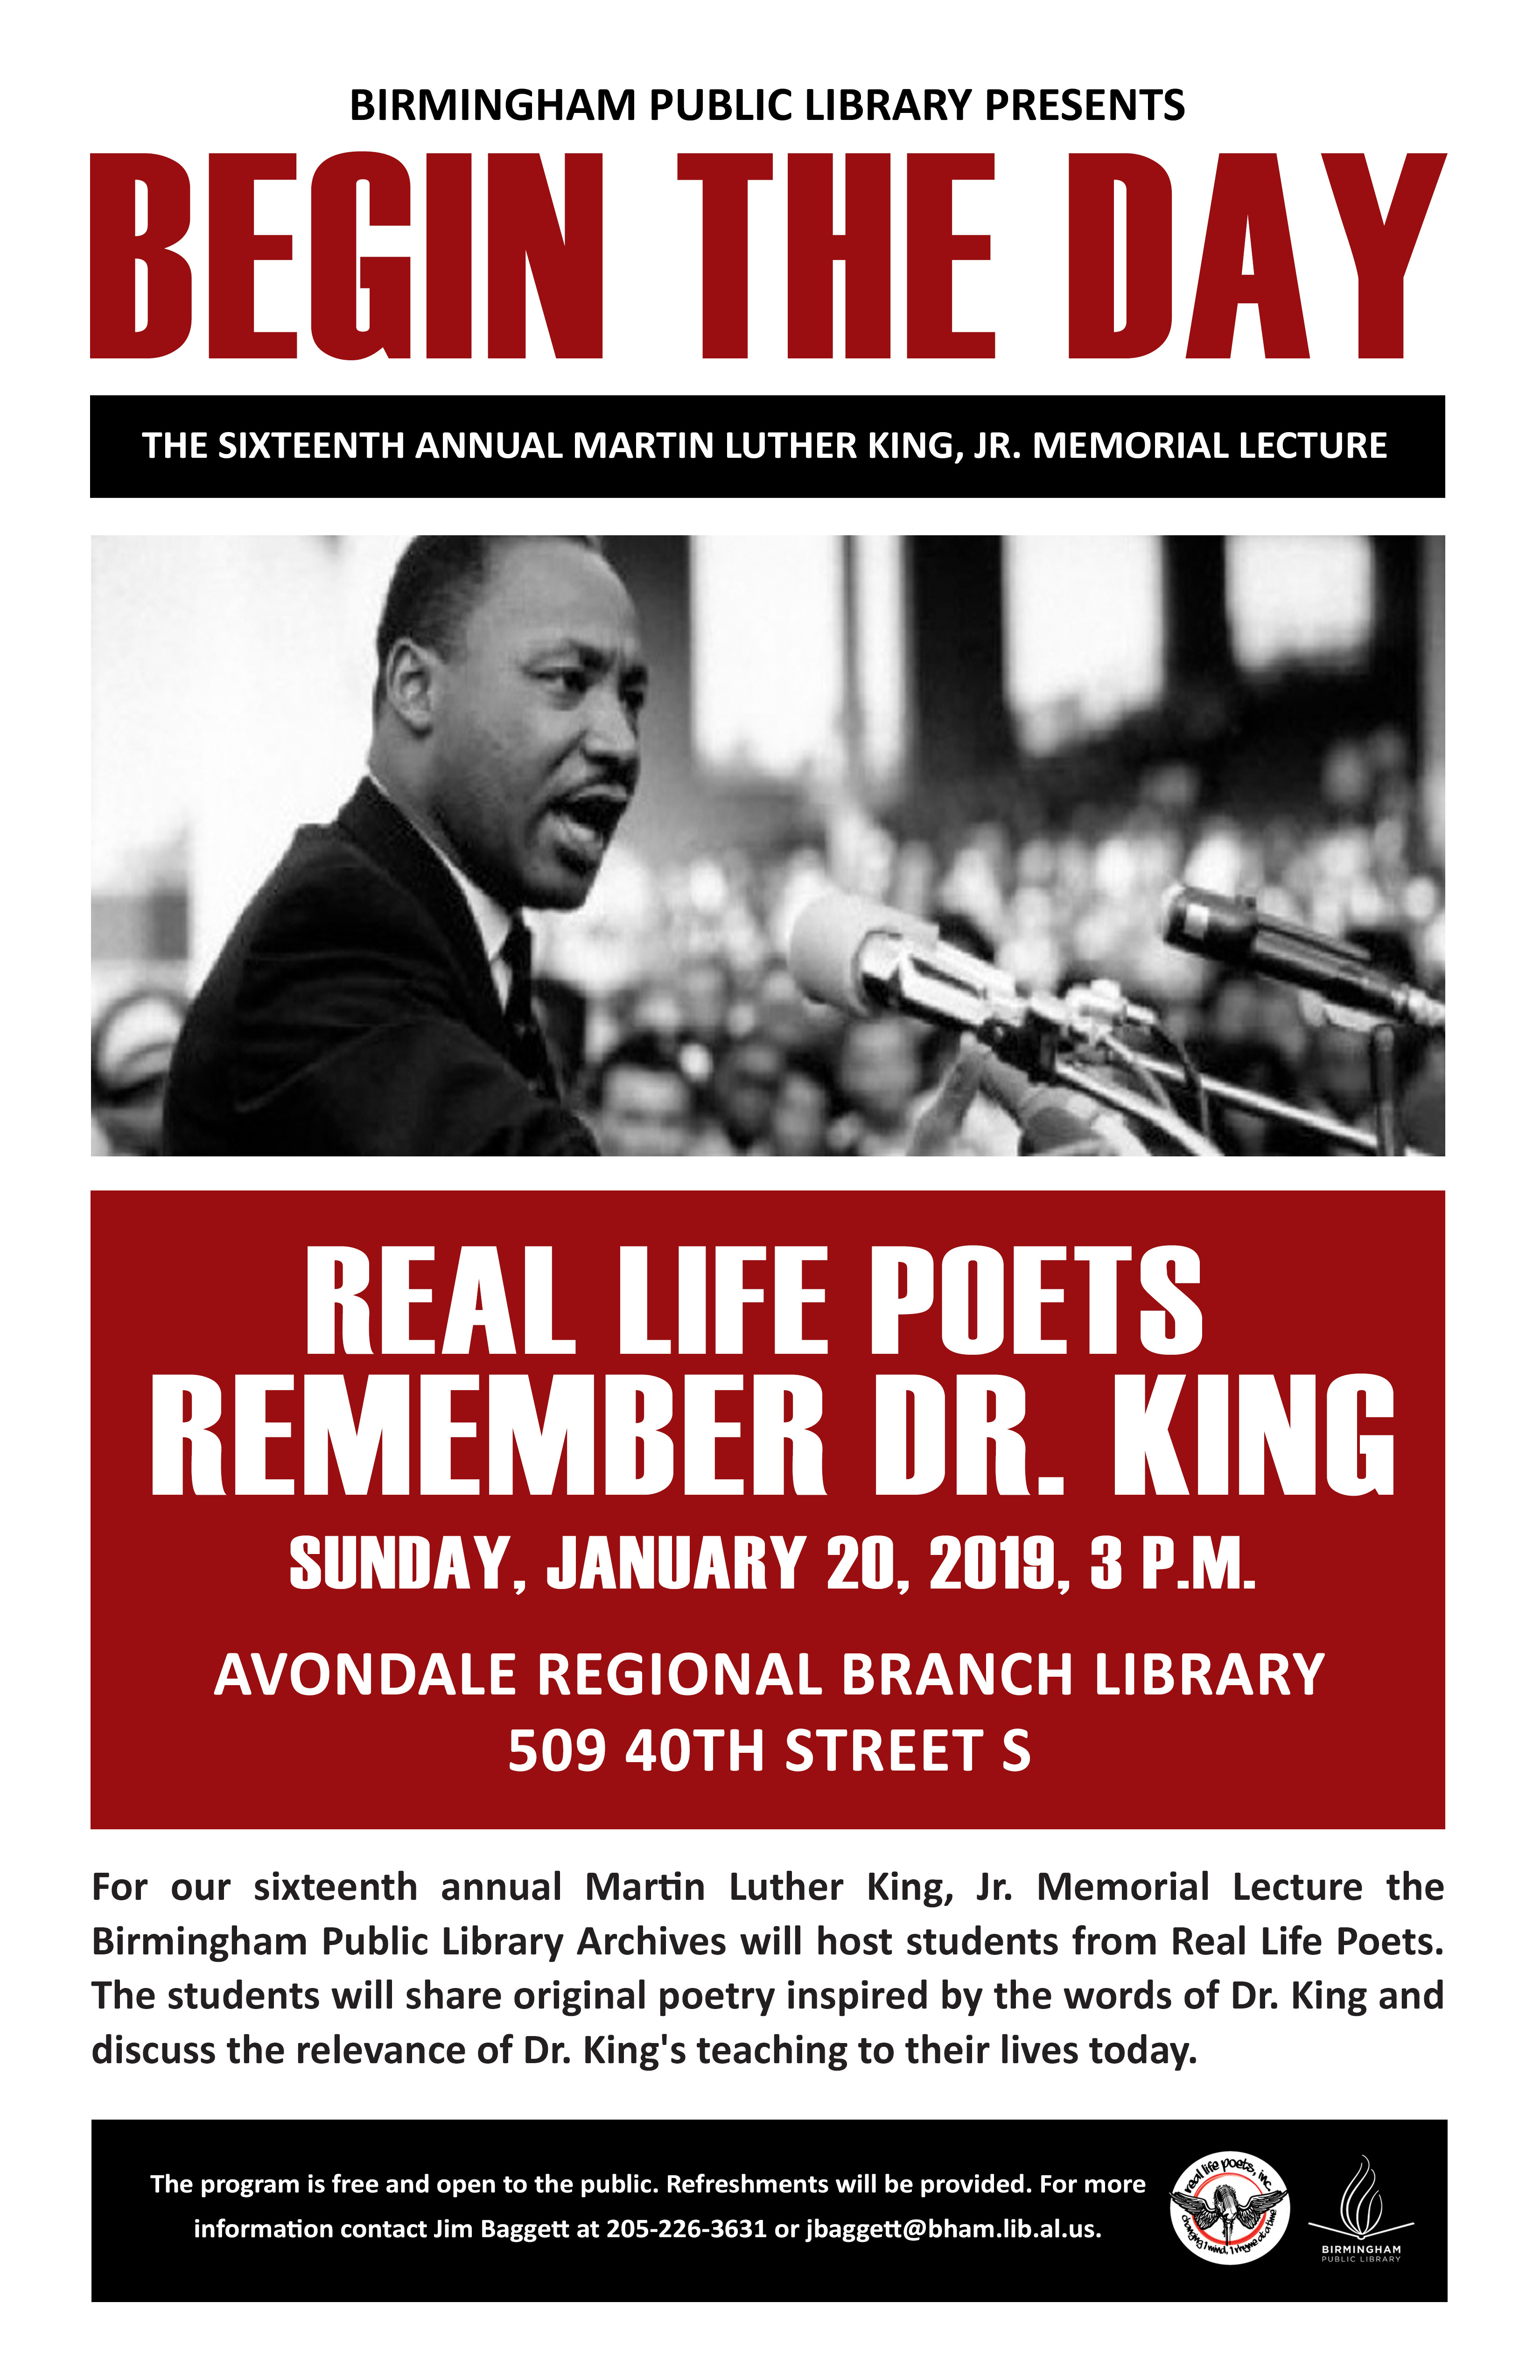 The Annual Martin Luther King Jr Memorial Lecture